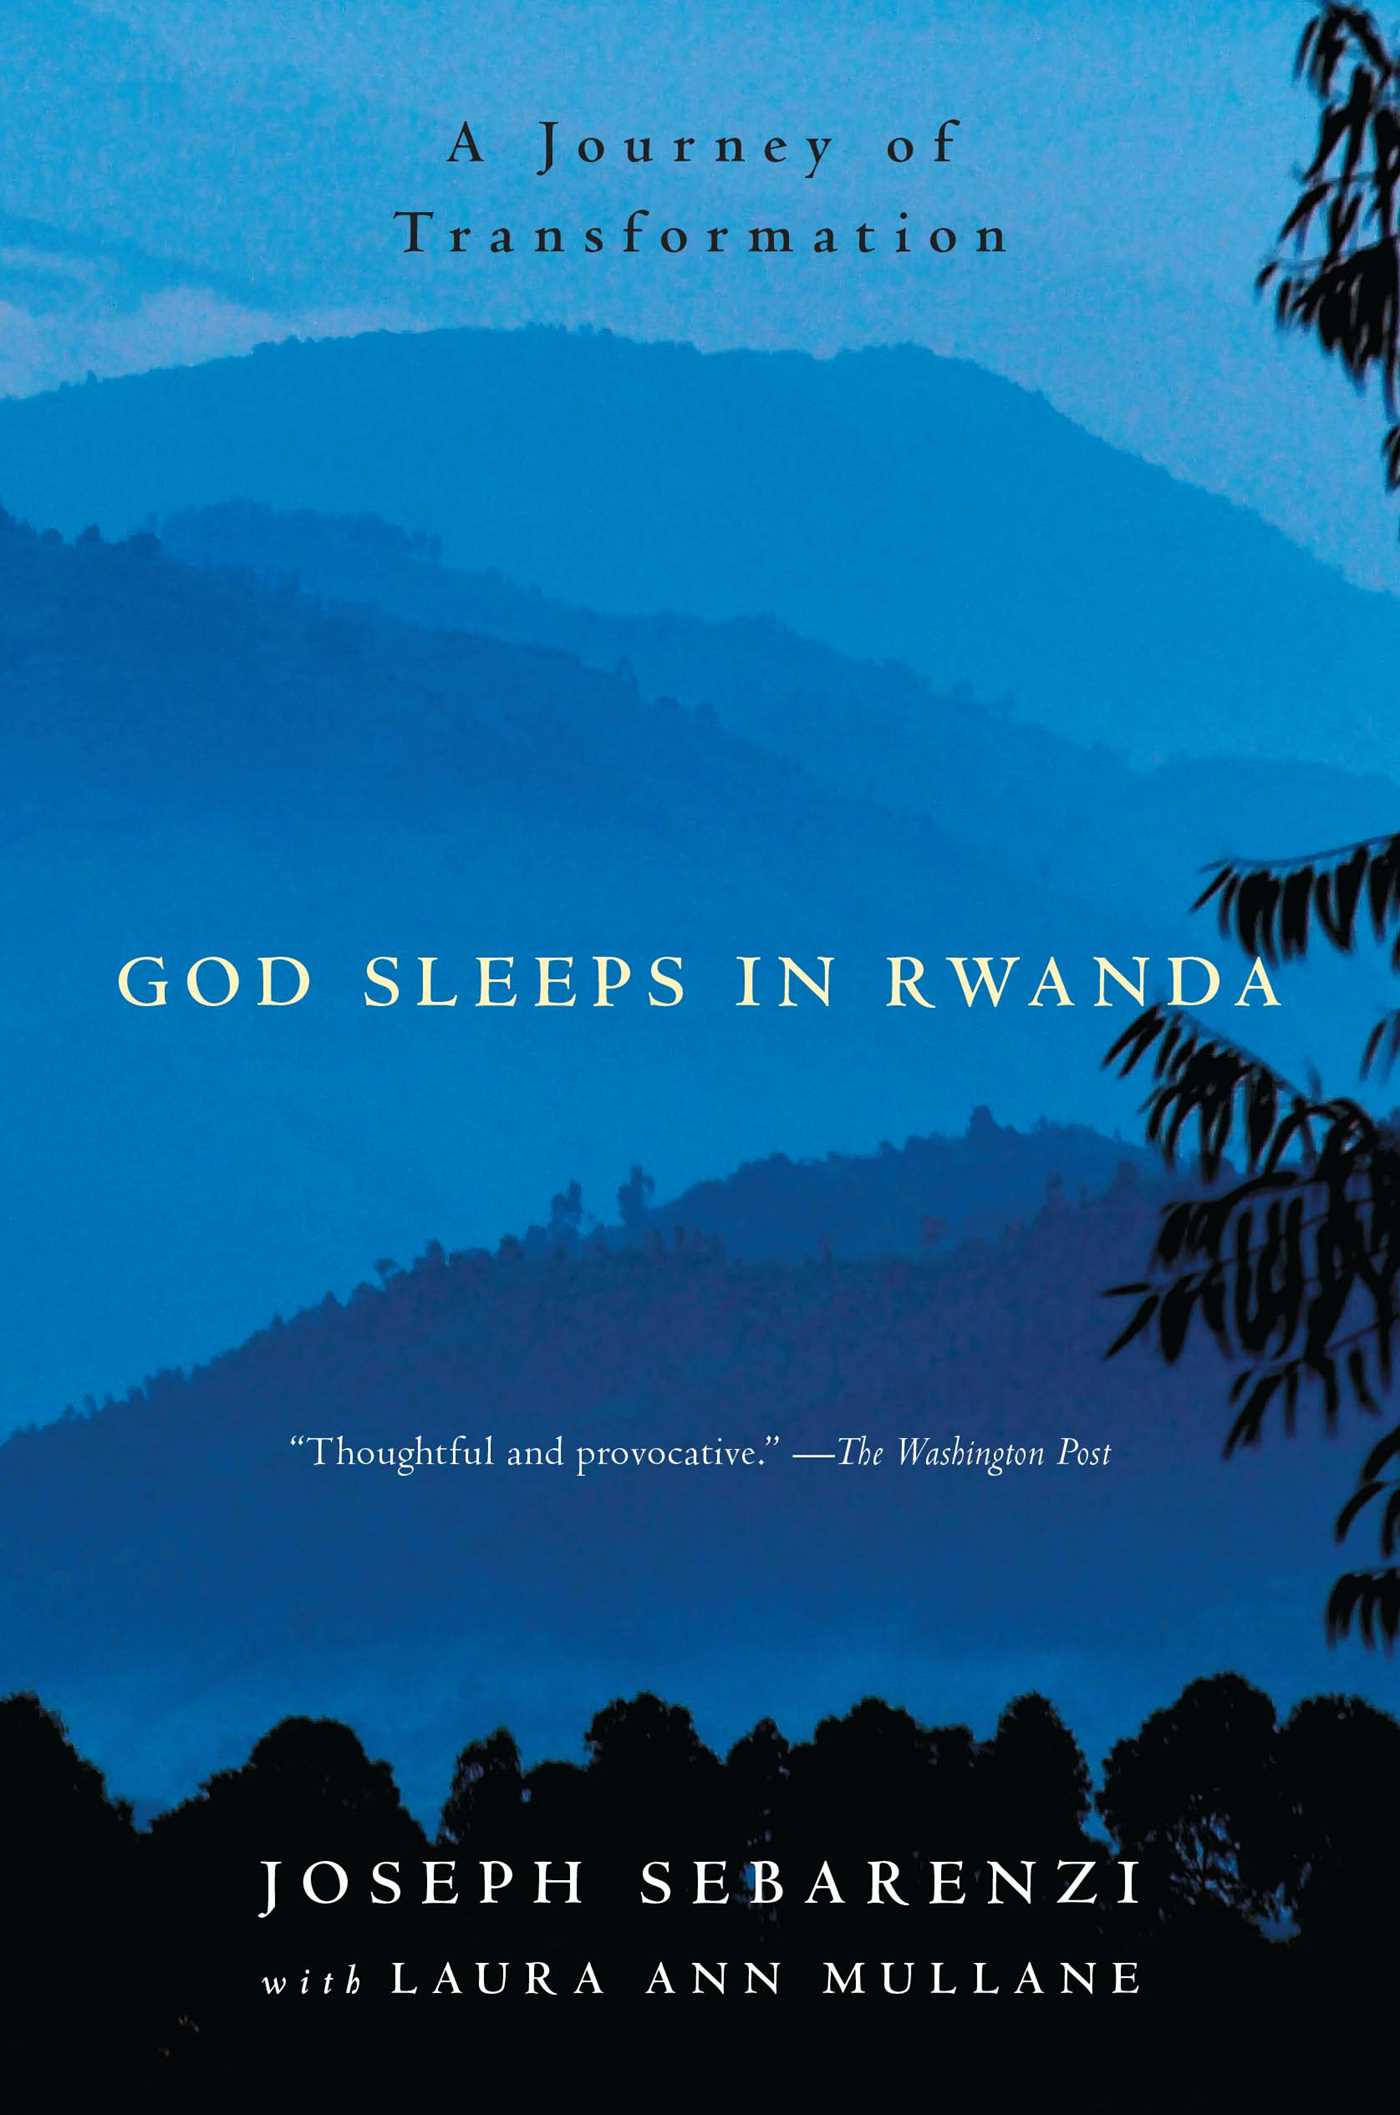 God-sleeps-in-rwanda-9781416575771_hr